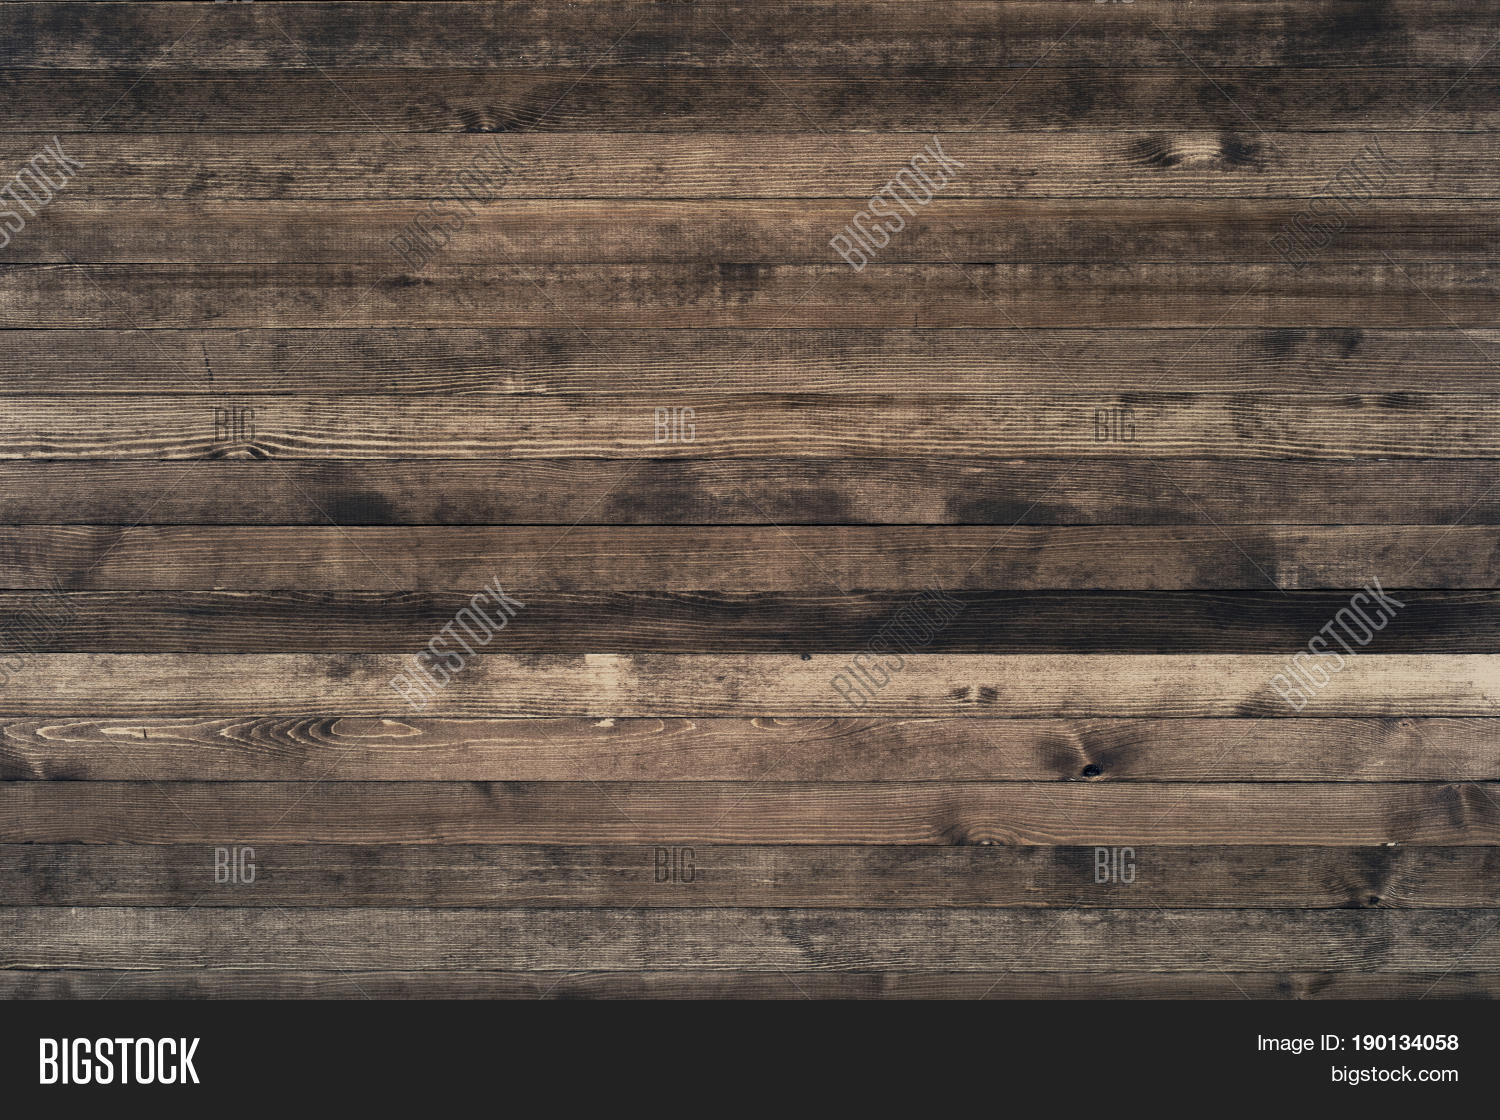 Large dinner empty wood table top  Wood table texture background  Plank  board of wood. Large Dinner Empty Wood Table Top  Image   Photo   Bigstock